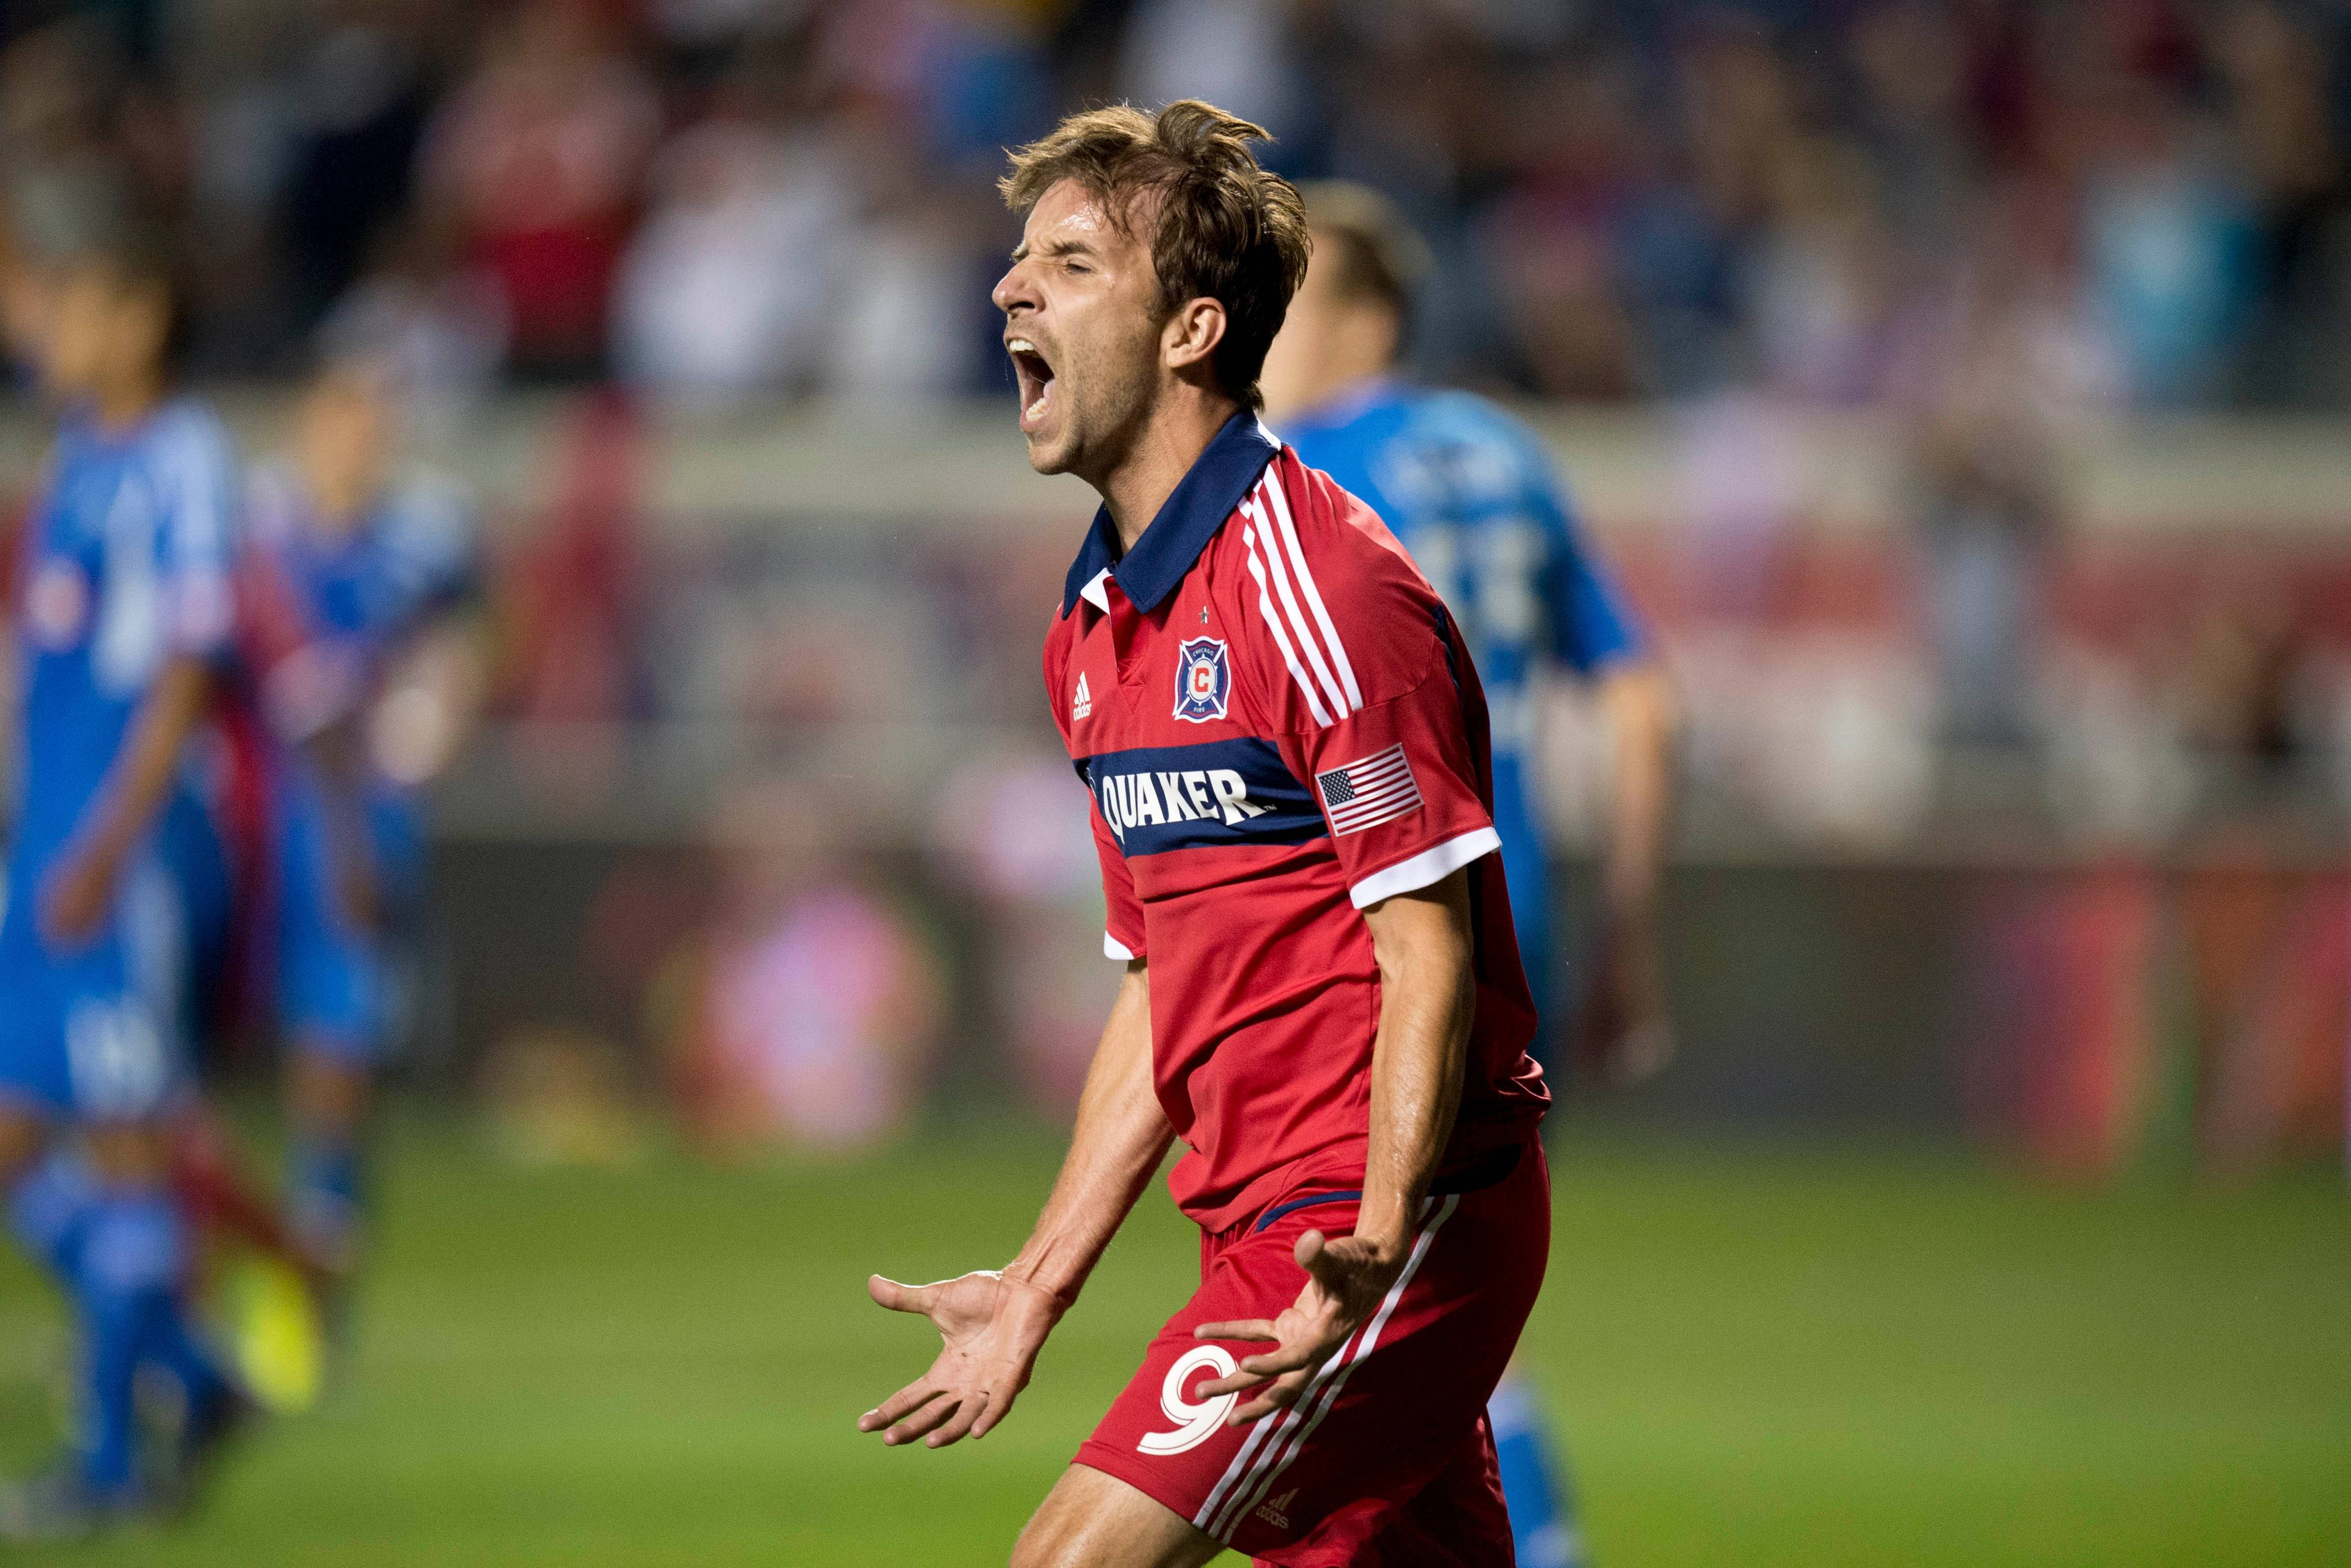 Chicago Fire forward Mike Magee, here celebrating his goal against Montreal last season, should be available to play in the March 9 opener, Fire officials said Friday.